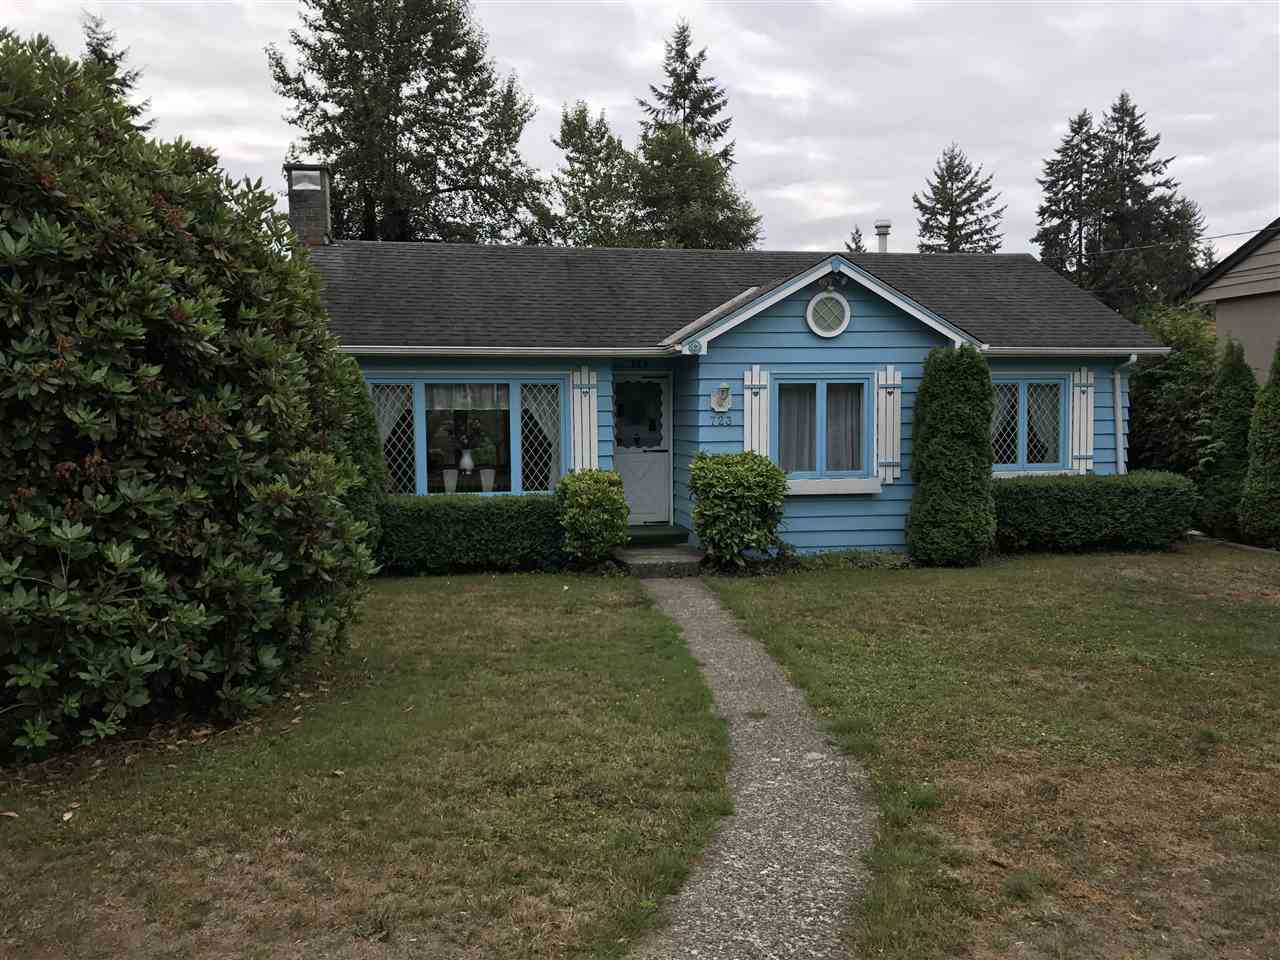 723 W 20TH STREET, North Vancouver